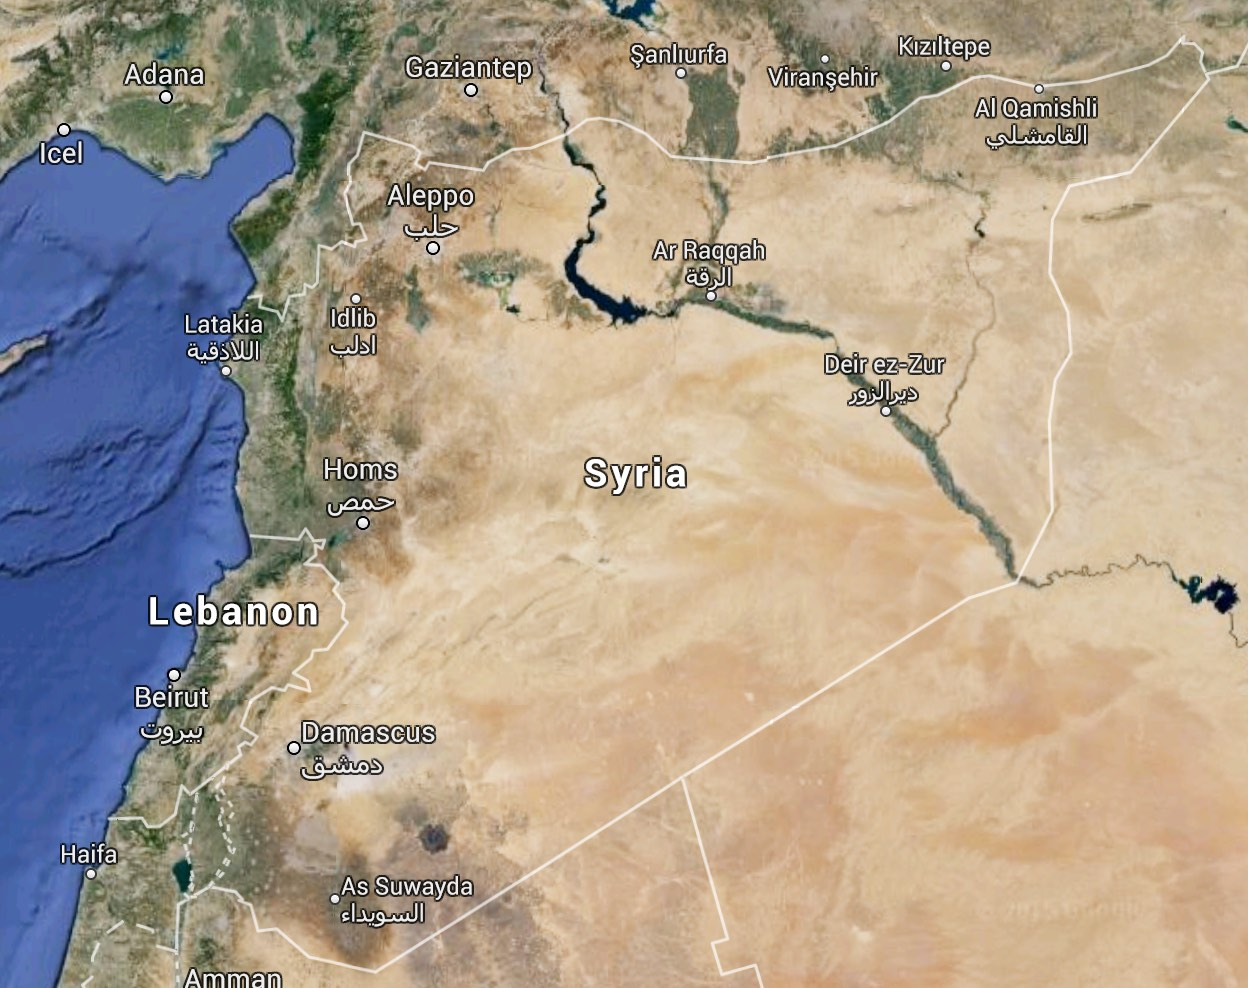 Google map of Syria